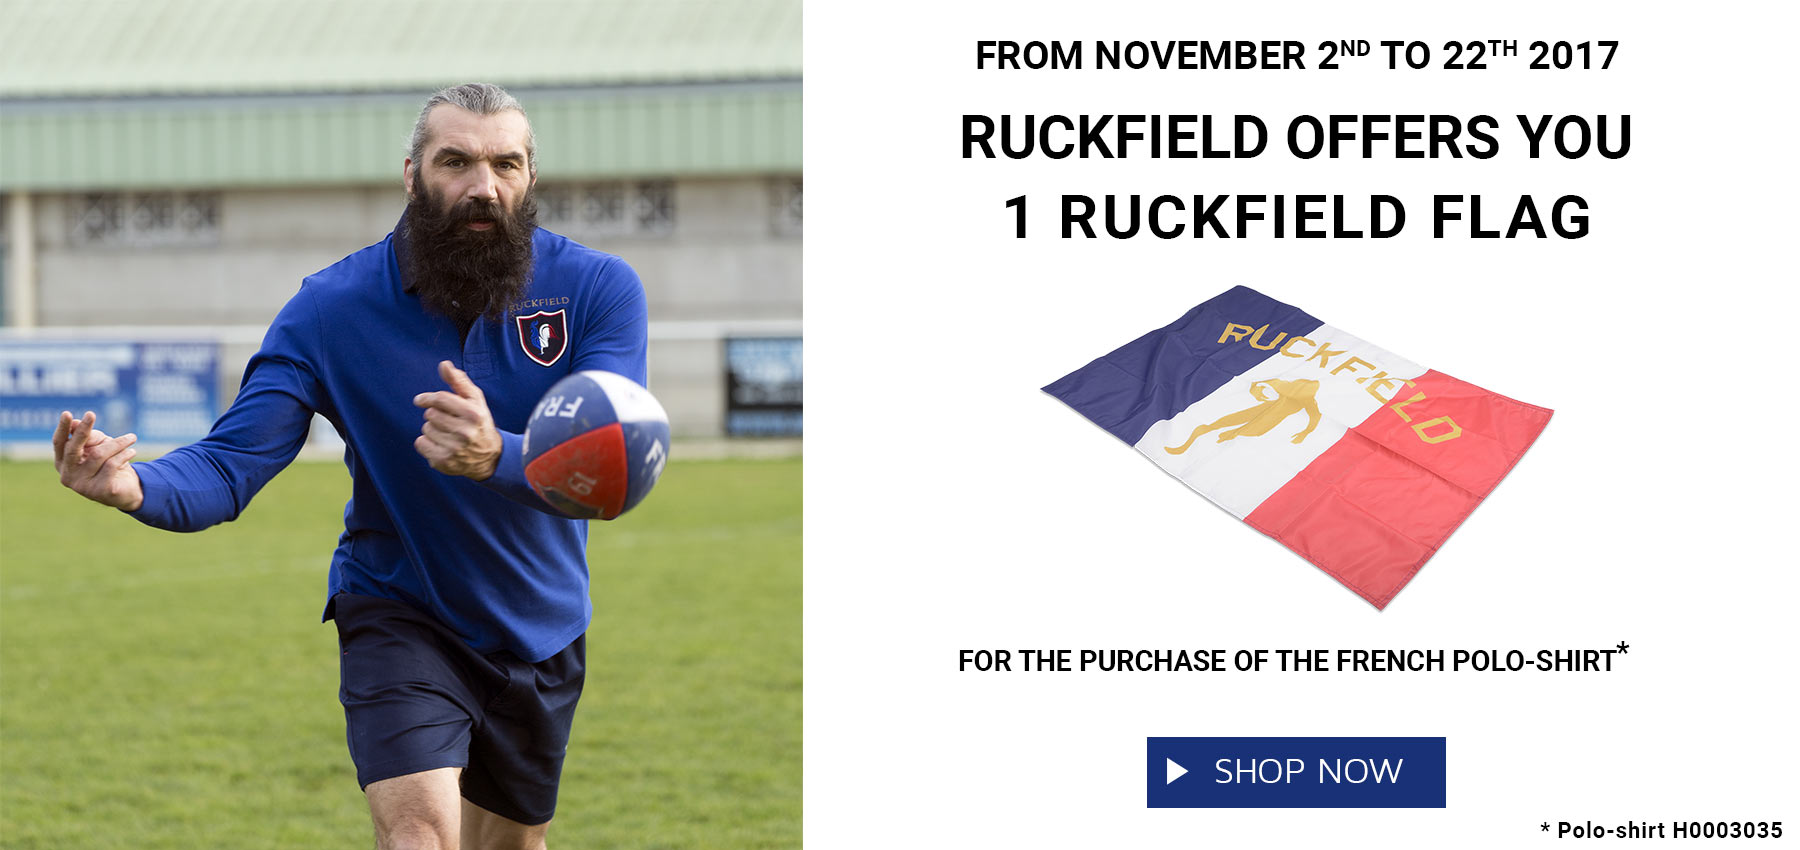 Ruckfield offers you a FLAG for the purchase of a long sleeves polo shirt